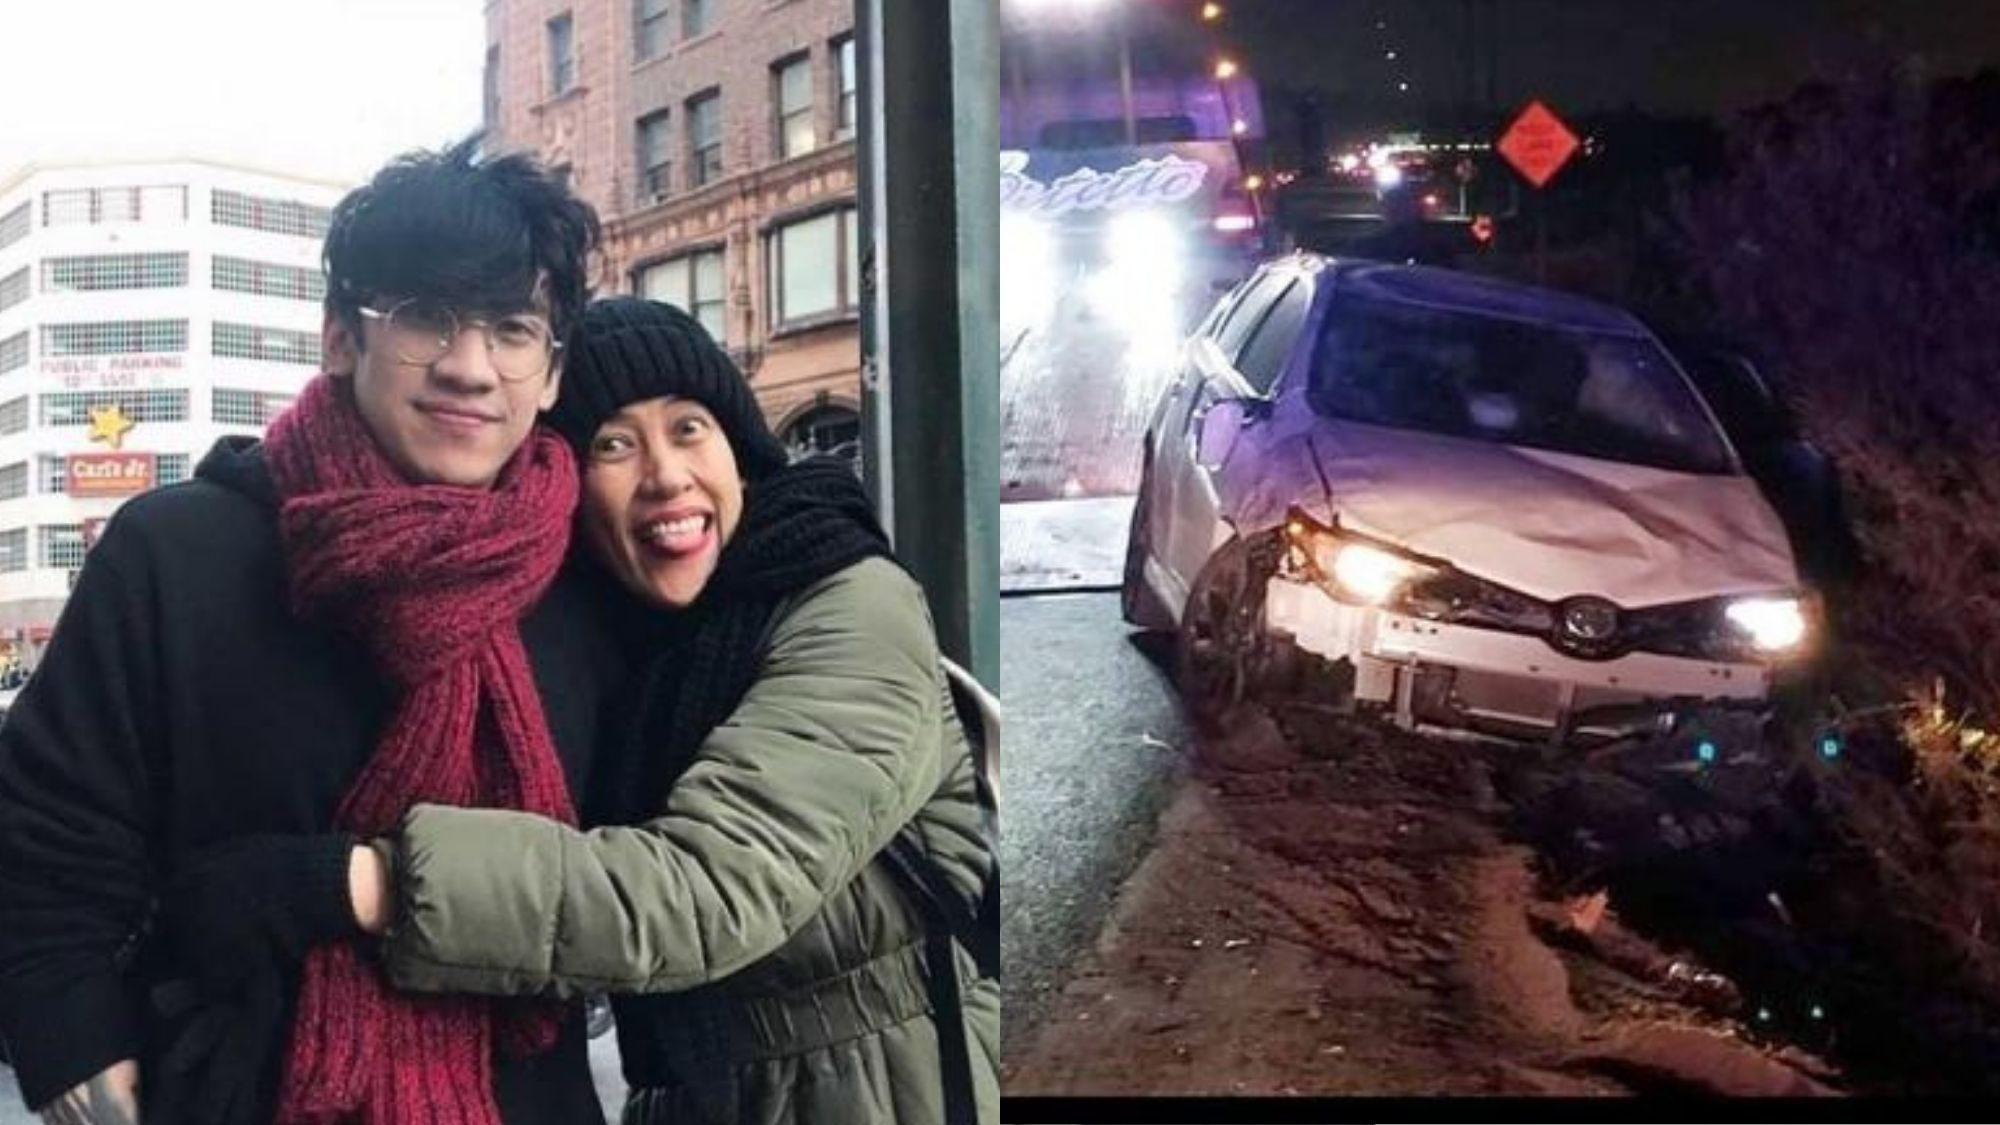 Miracle from God; Ai Ai thankful as son Nicolo unschated after car crash edited by opinyon